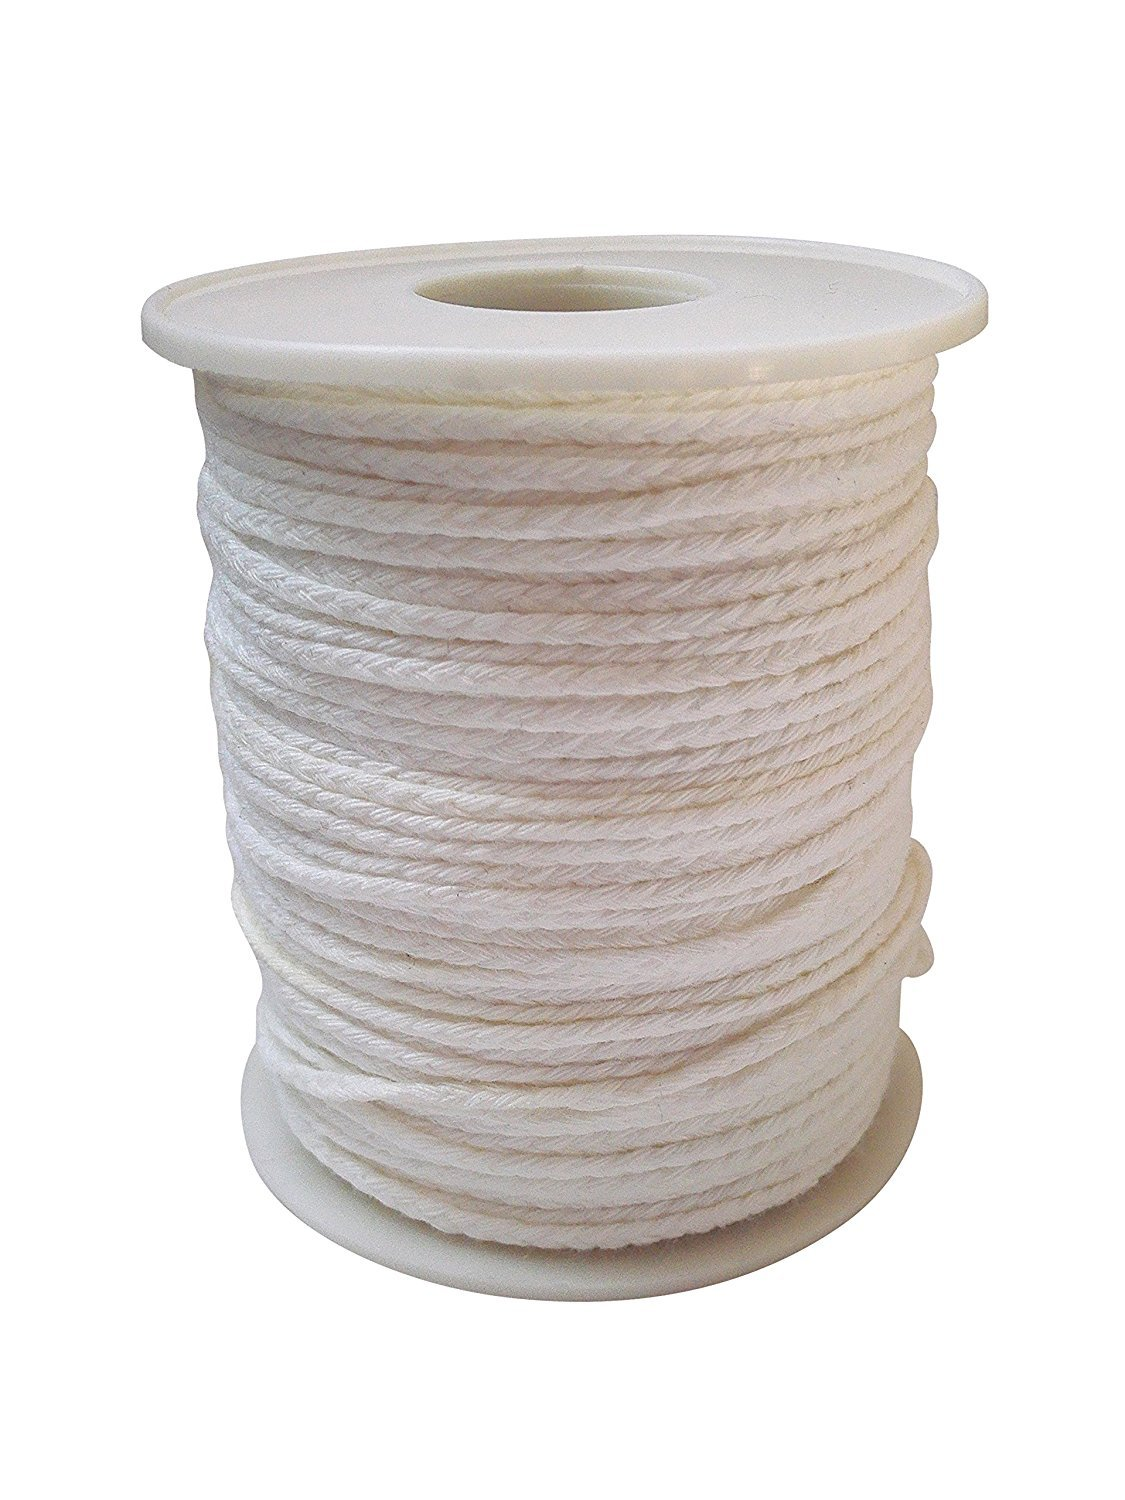 Beeswax Hemp Wick,200 ft Spool,100% Organic Hemp Wick Well Coated With Natural BeesWax,Standard Size(1.0mm),Candle Wick Oameusa WA0030